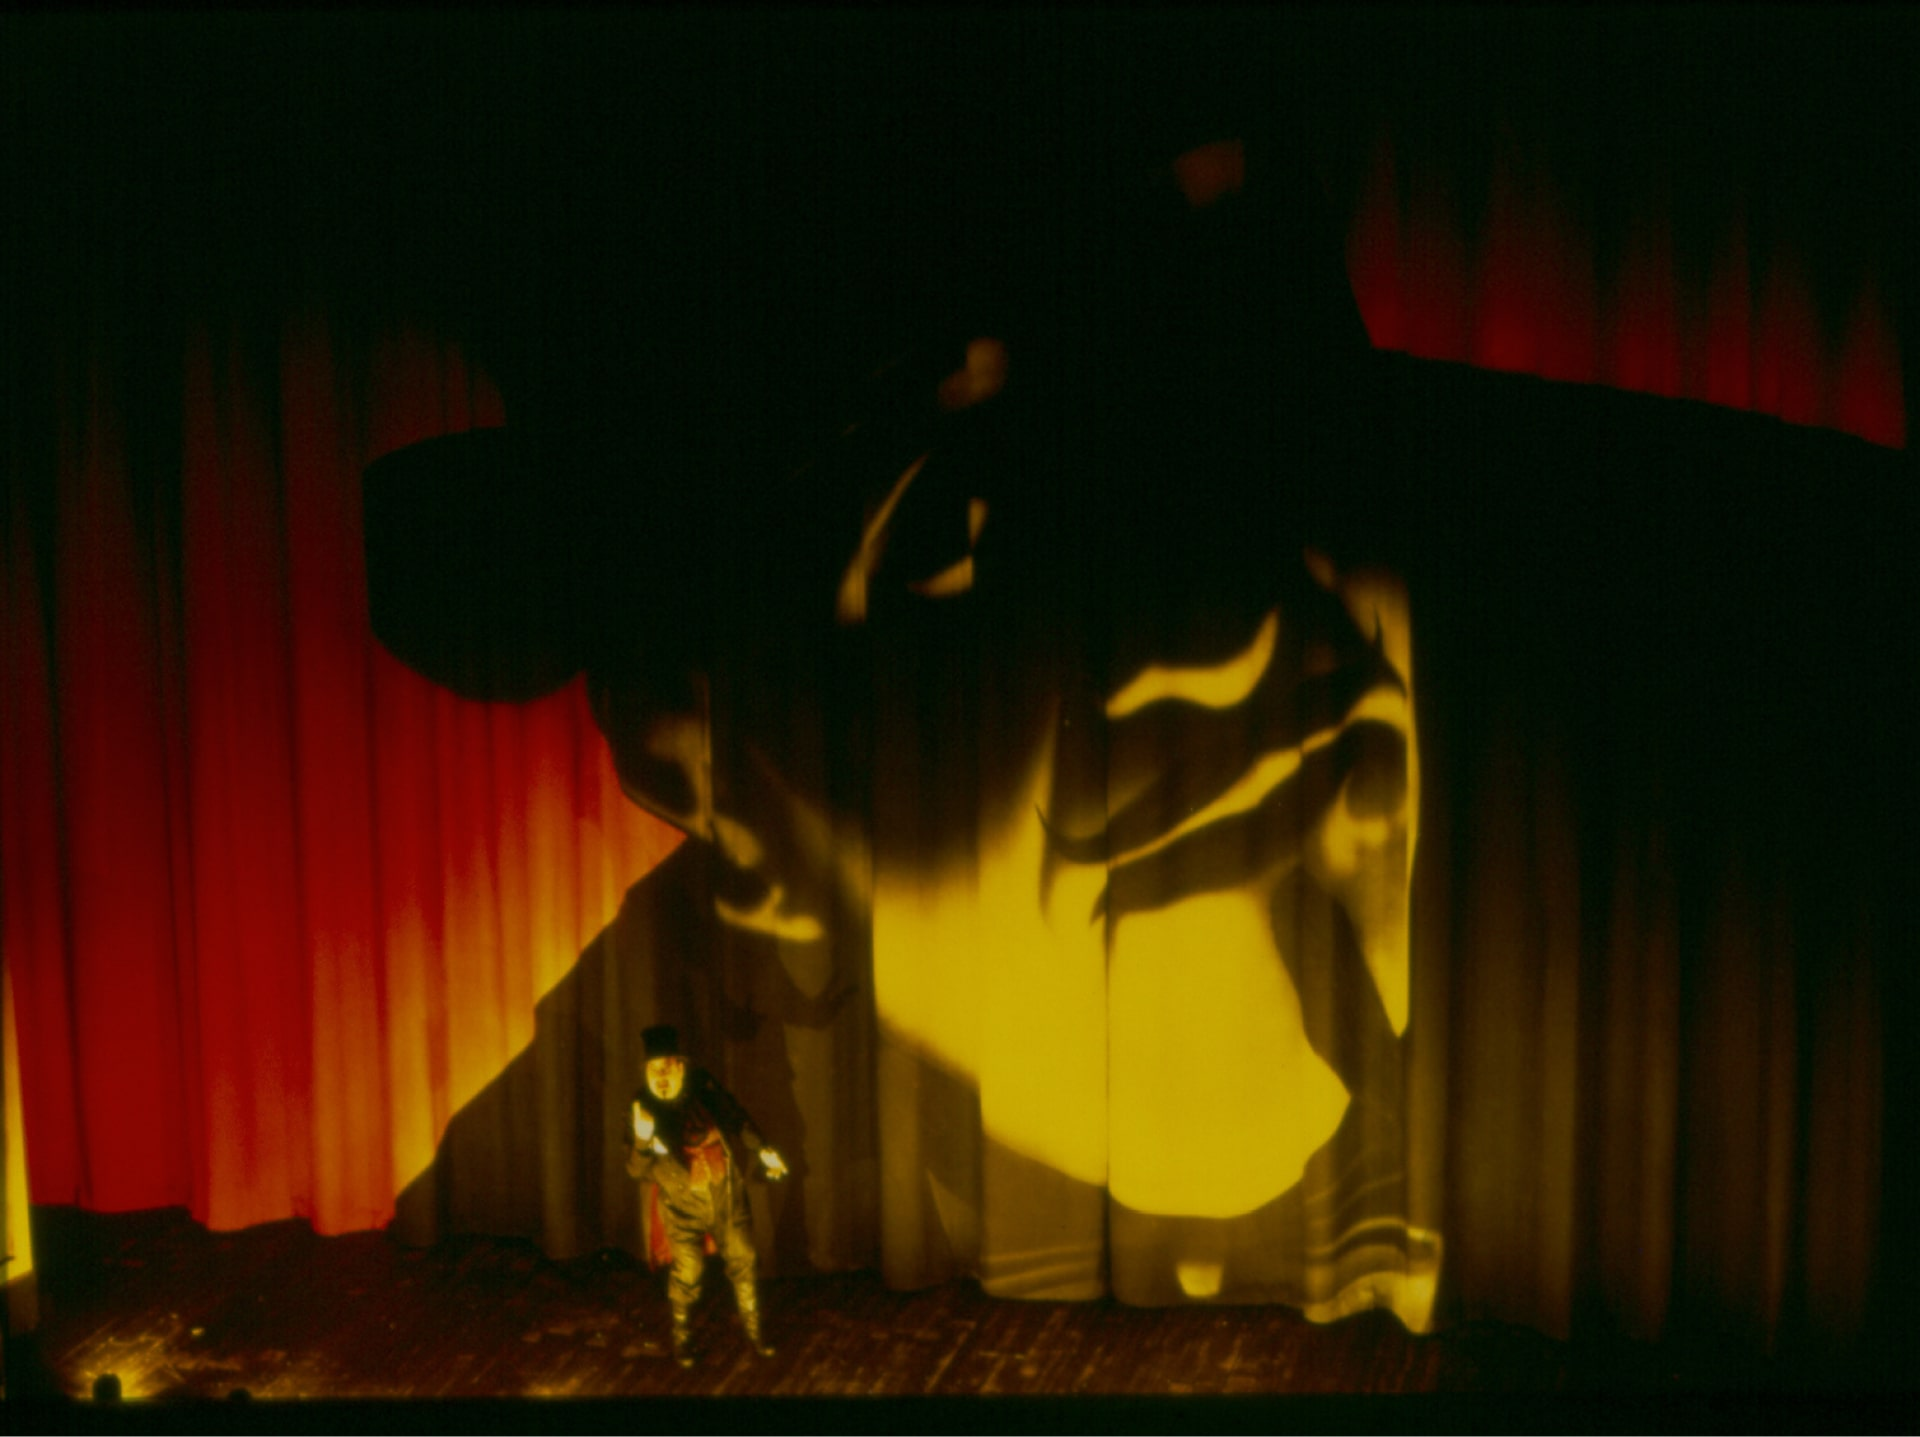 Magician in top hat stands dwarfed on foot lit stage in front of giant image of self painted on curtain.